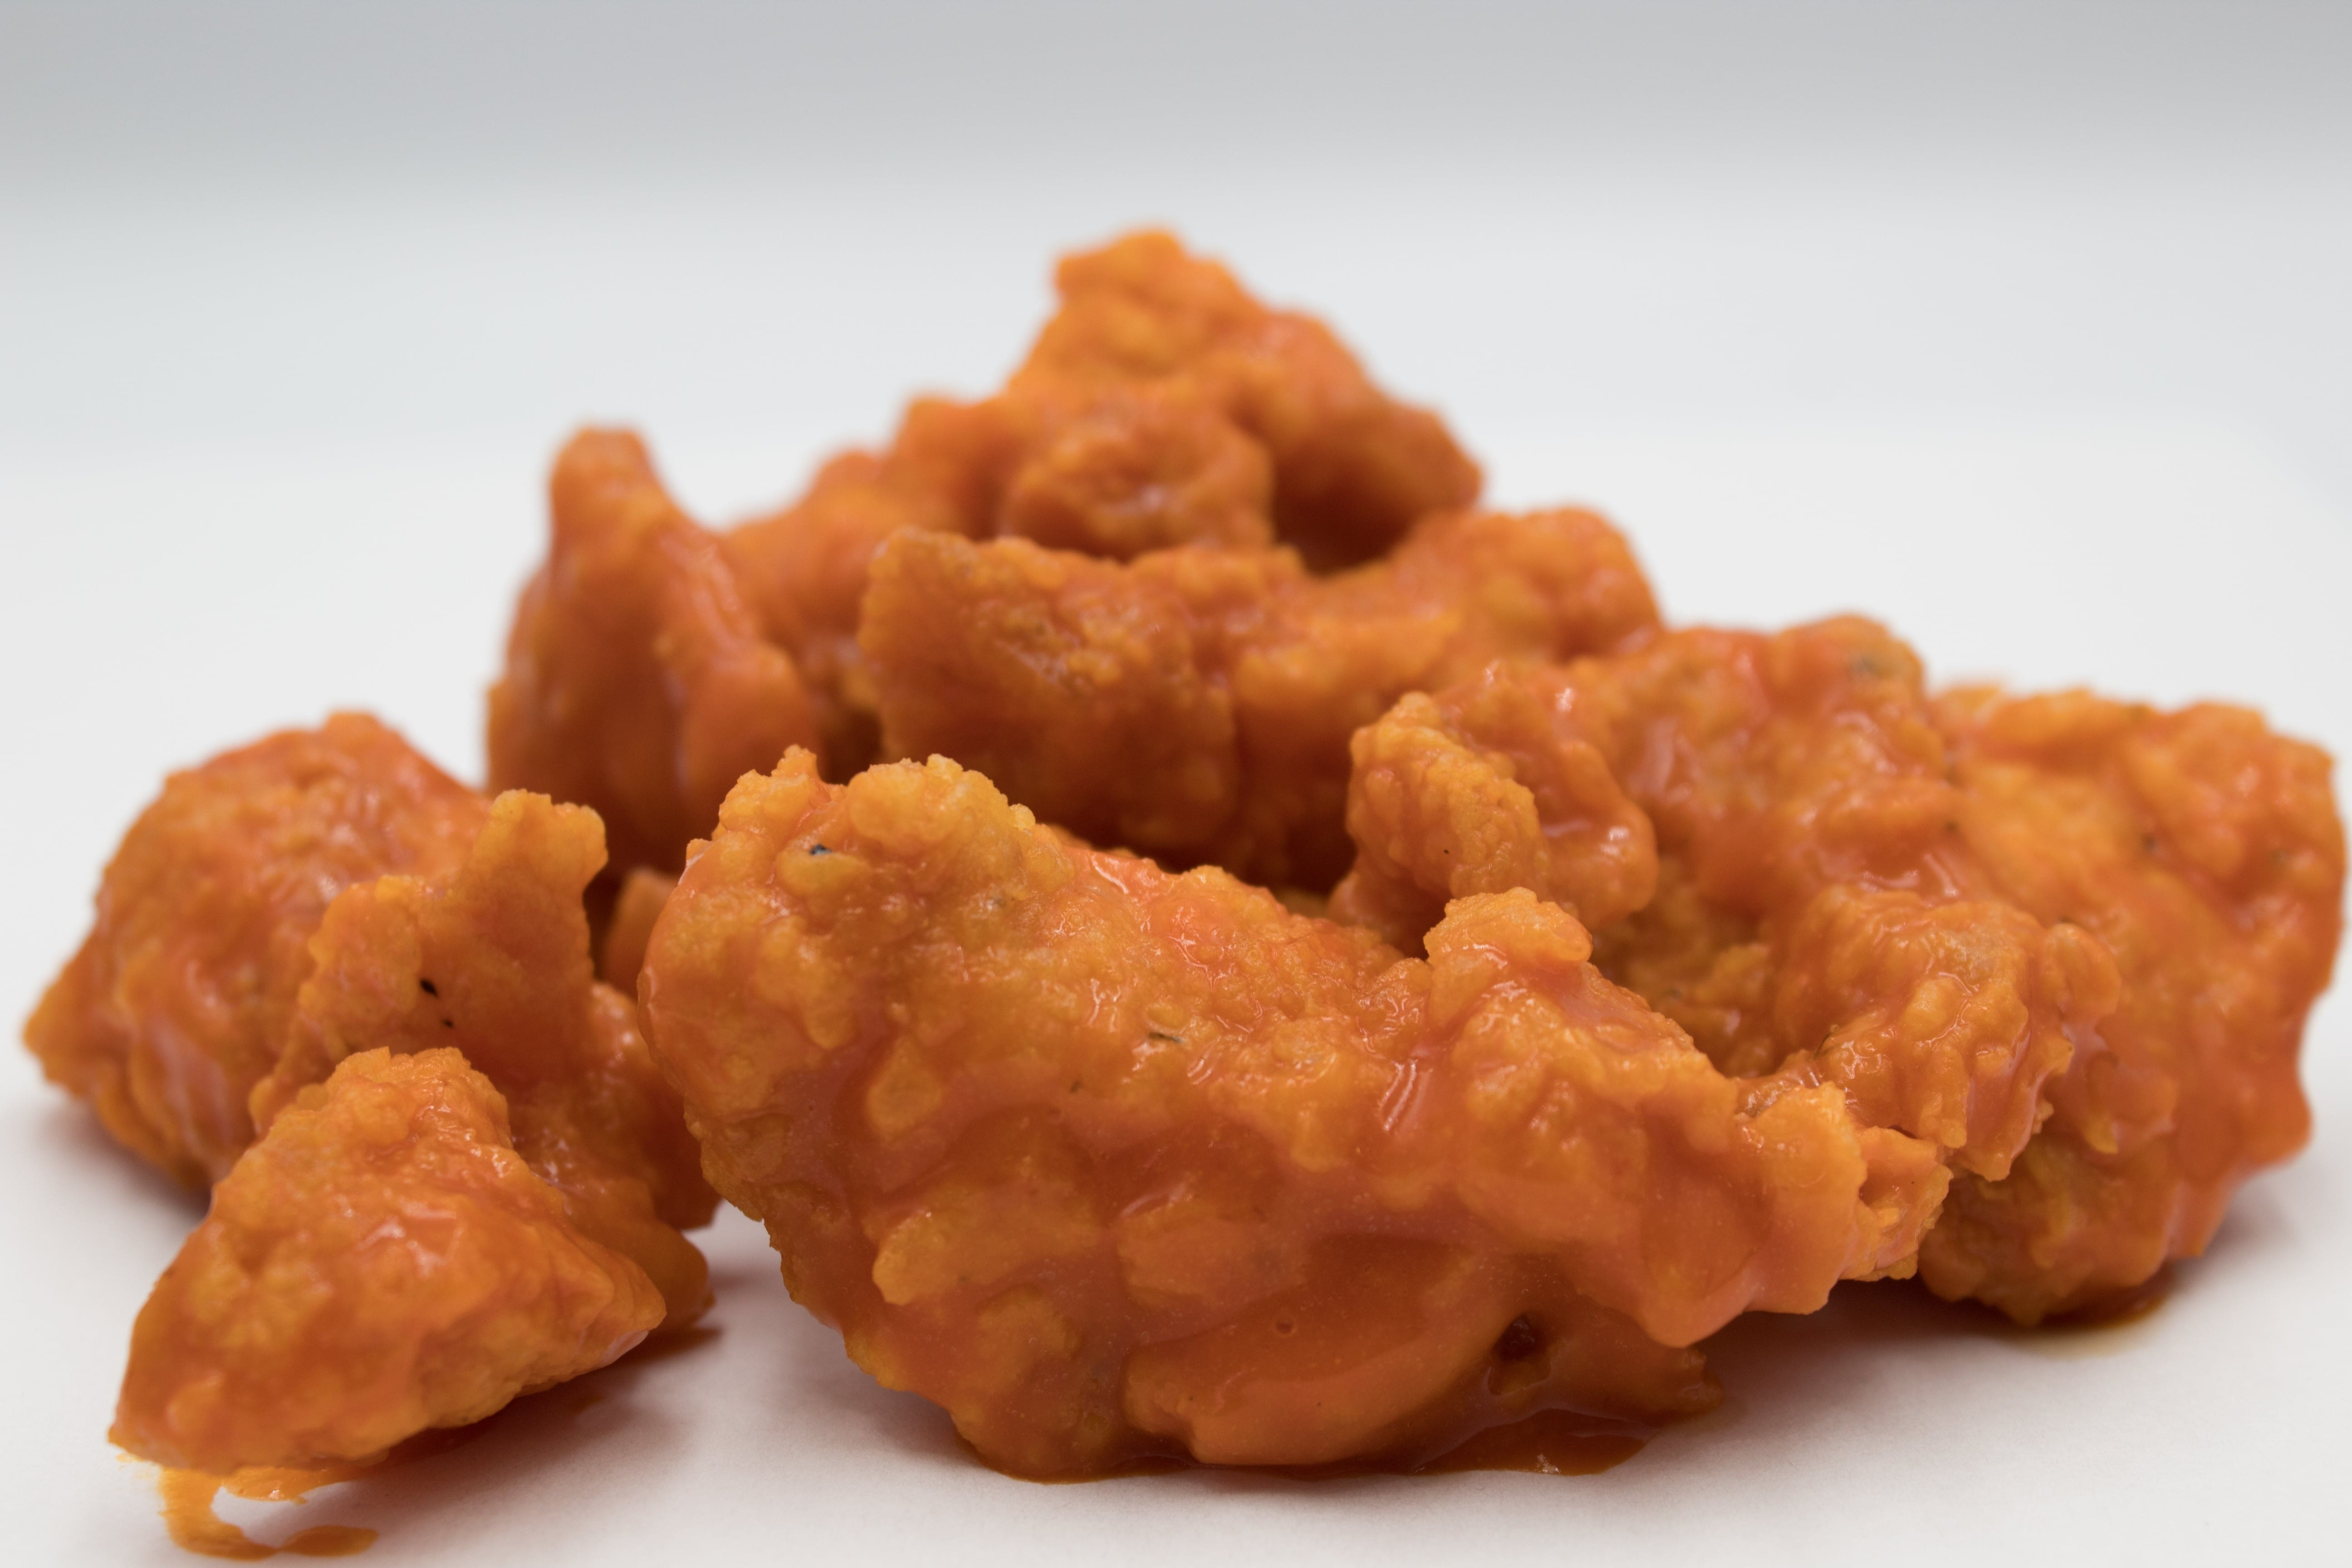 An image of boneless chicken wings as some liars might say